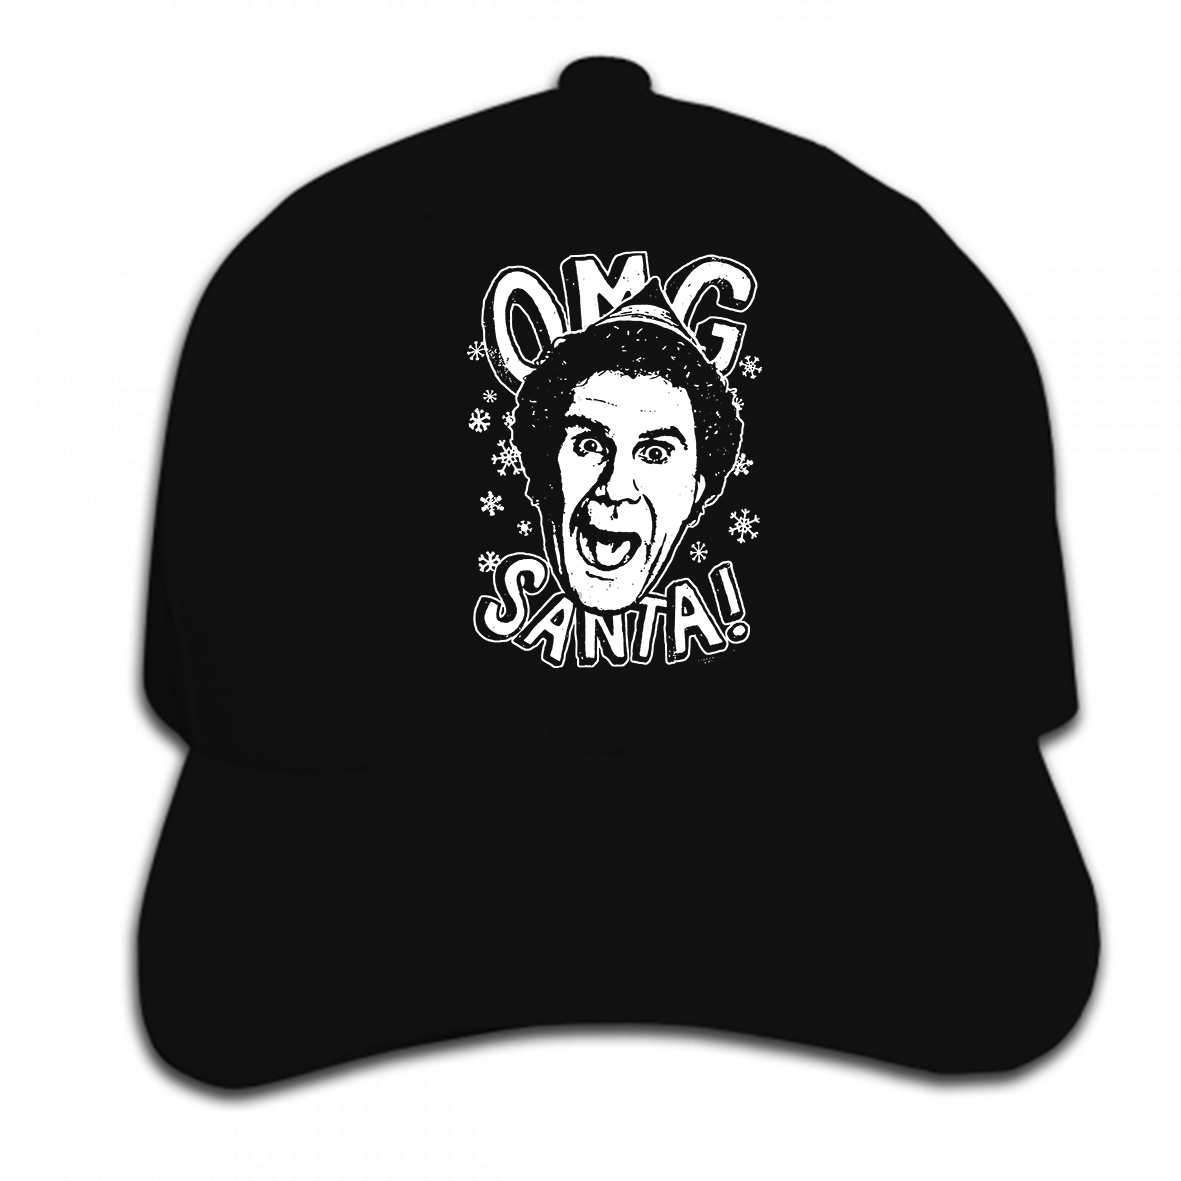 Print Custom Baseball Cap Elf Movie Will Ferrell Face OMG SANTA! Adult Hat Peaked cap image